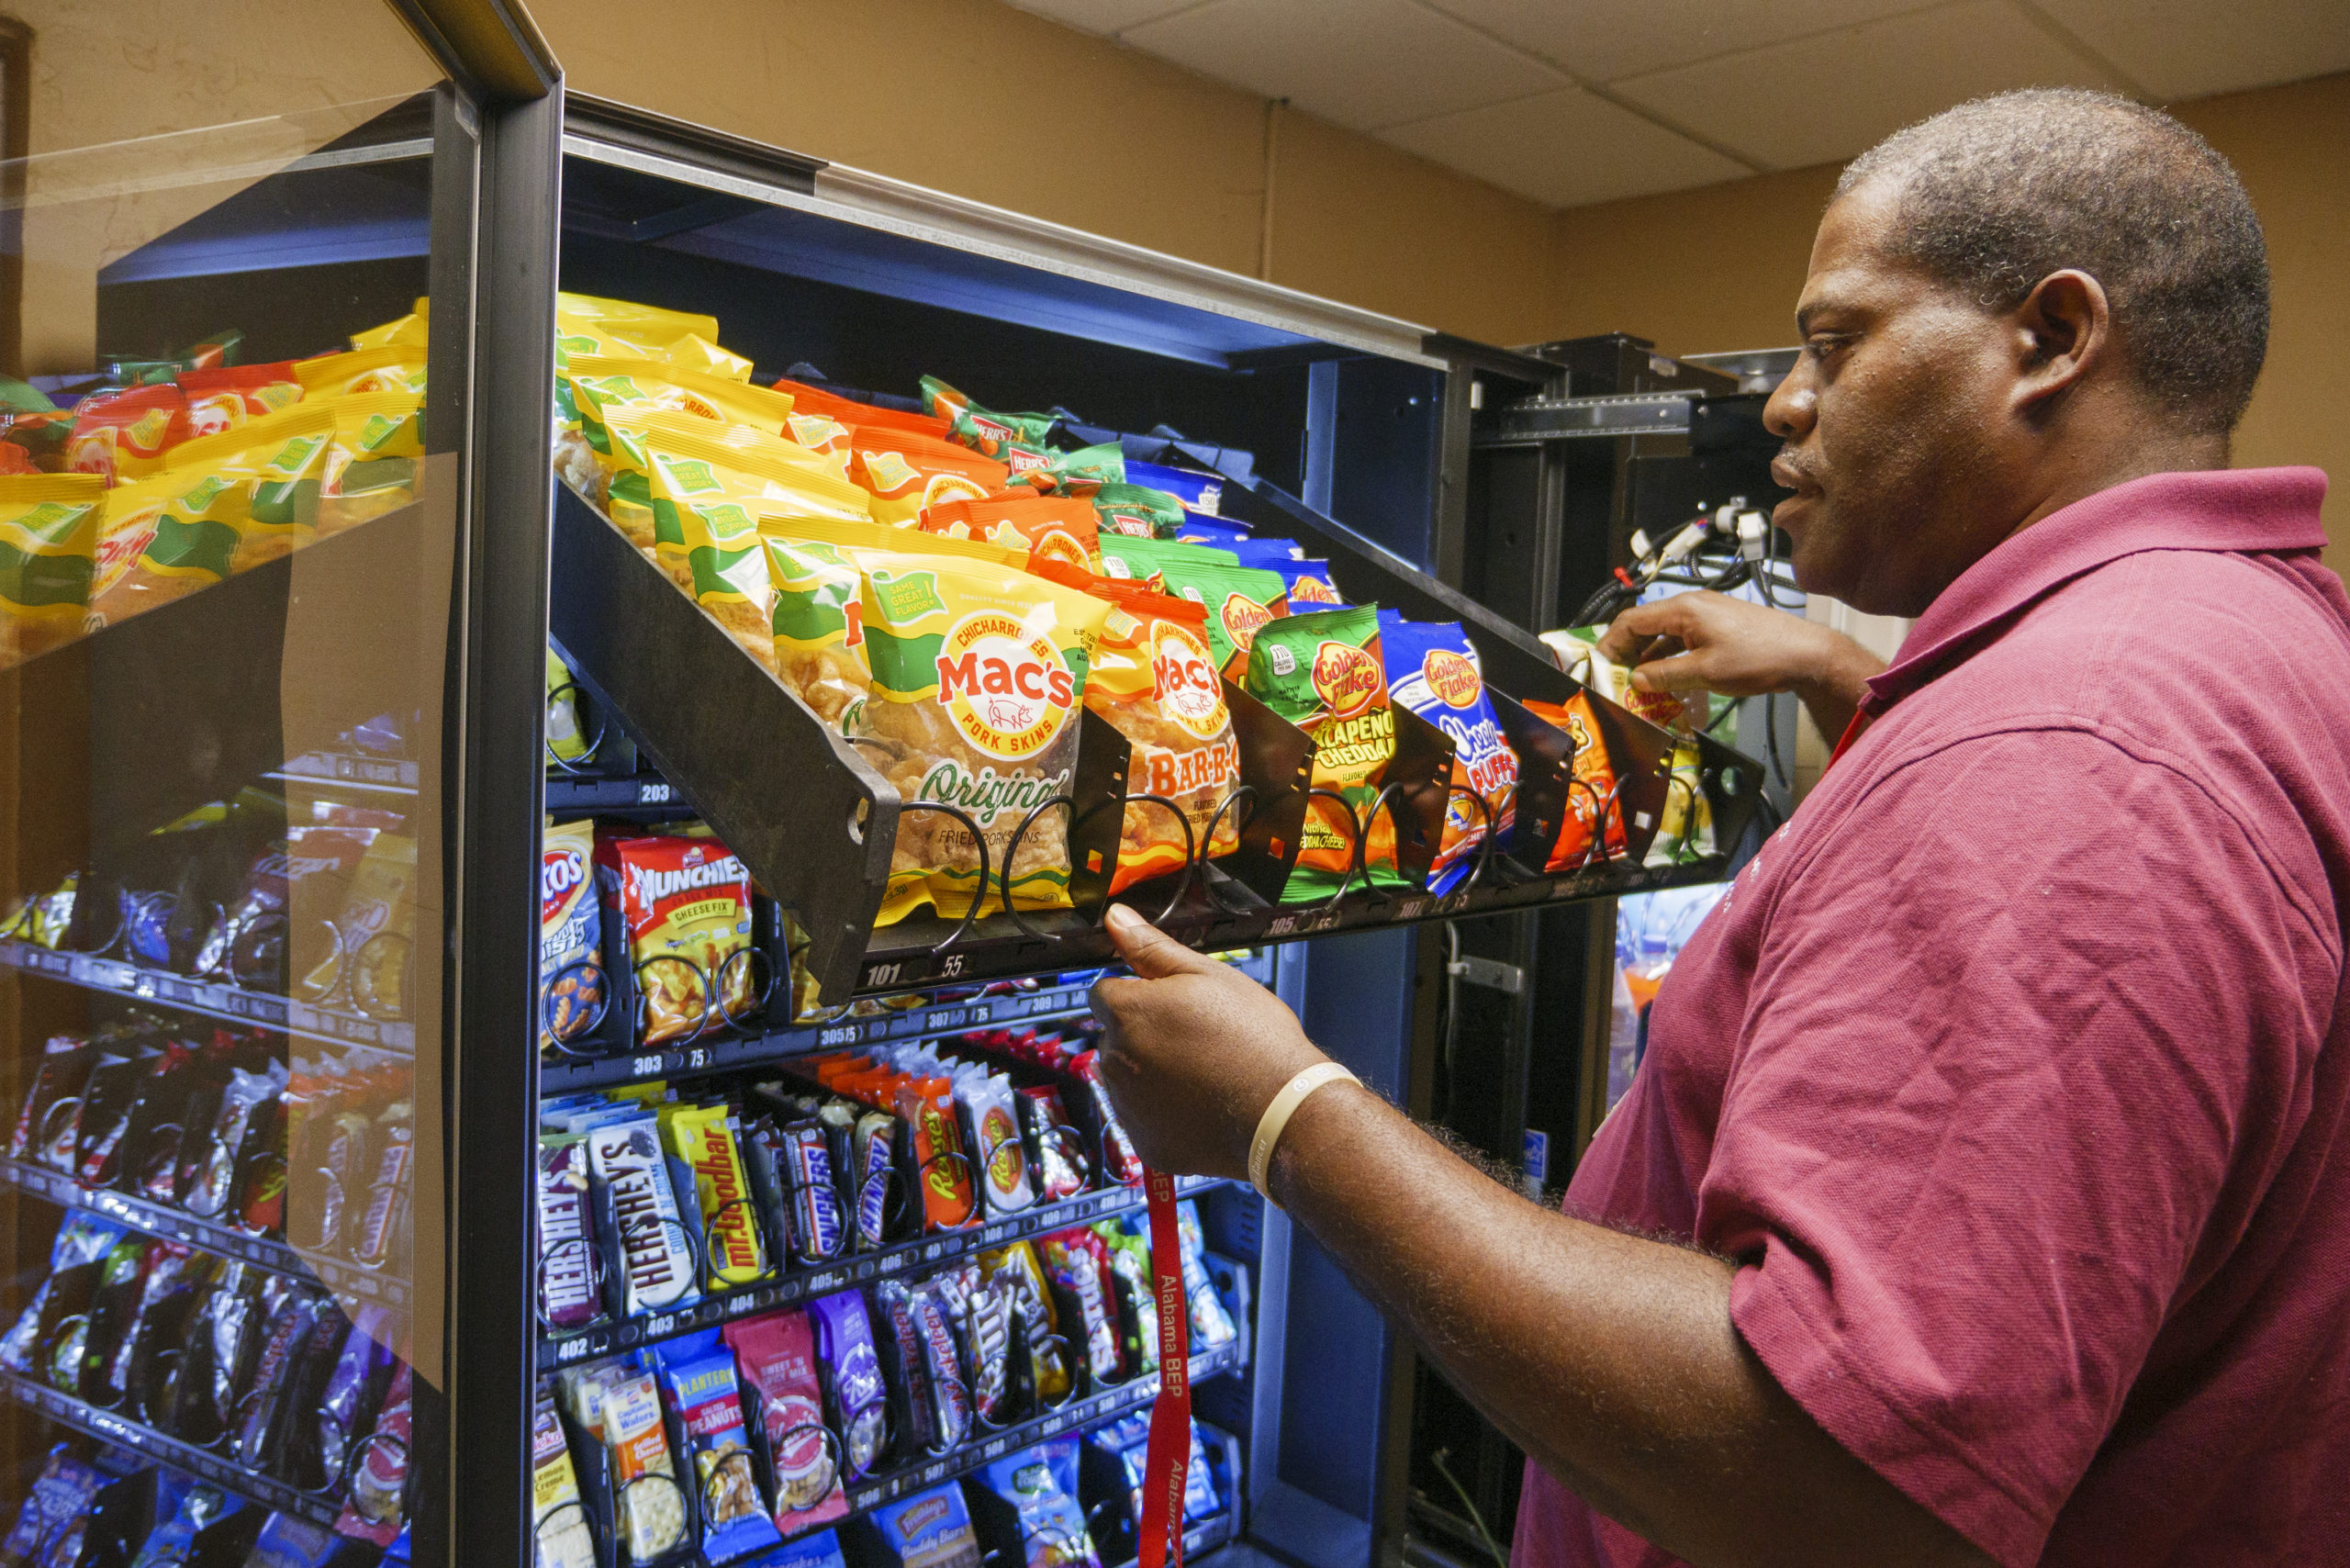 Man loading a vending machine with snacks.